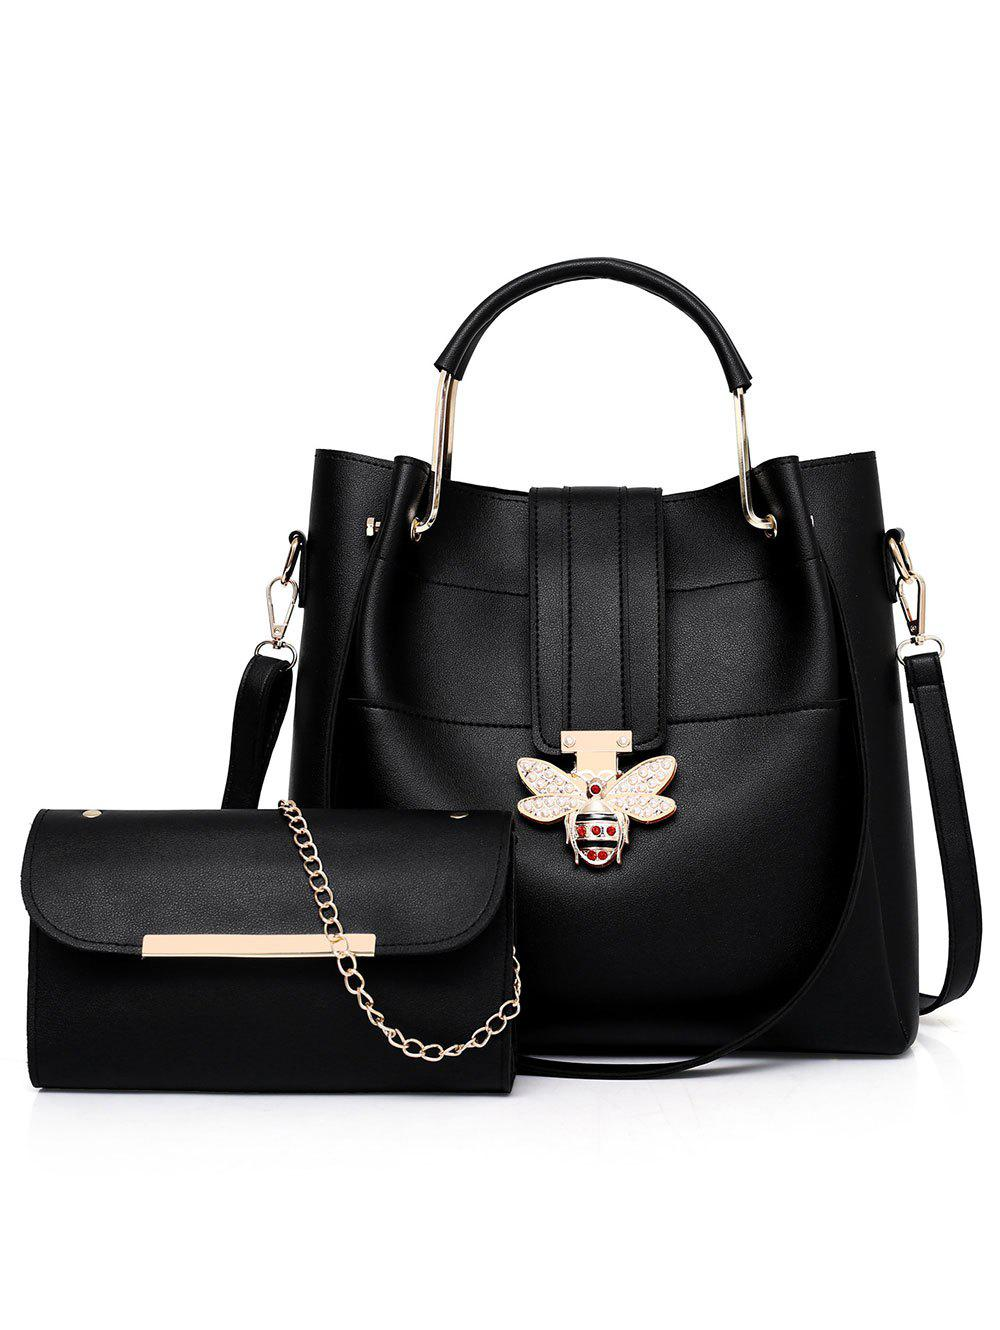 Fashion 2 Pieces Bee Shape Closure Embellished Handbag Crossbody Bag Set